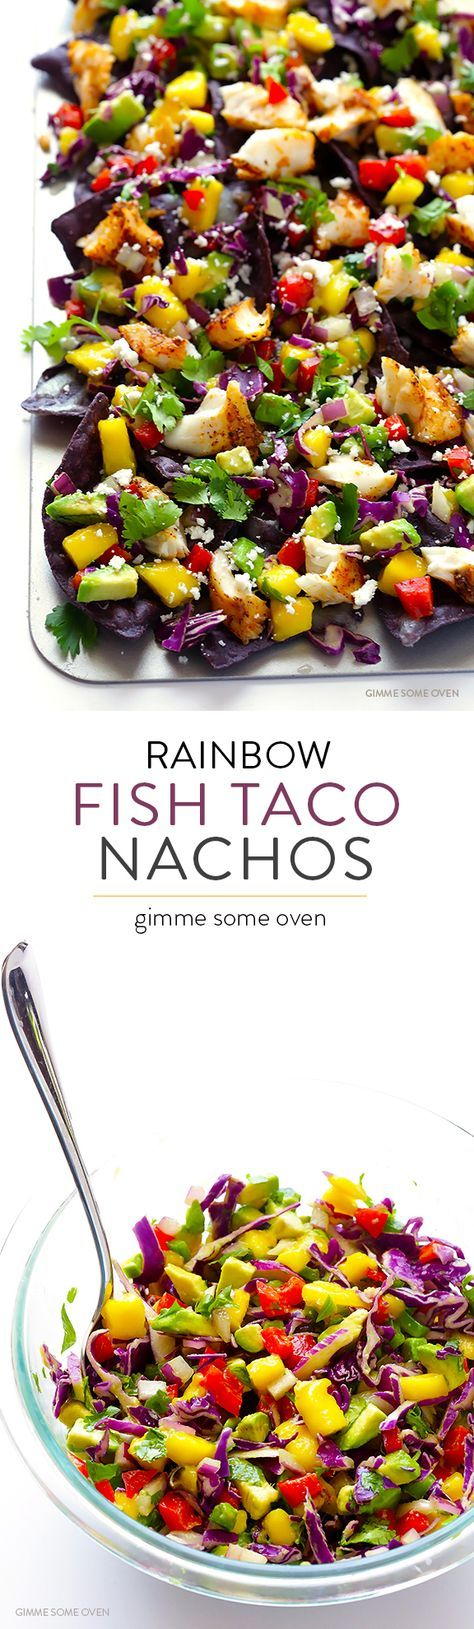 Rainbow Fish Taco Nachos -- easy to make, full of colorful tasty ingredients, and guaranteed to be the hit of the party! | gimmesomeoven.com